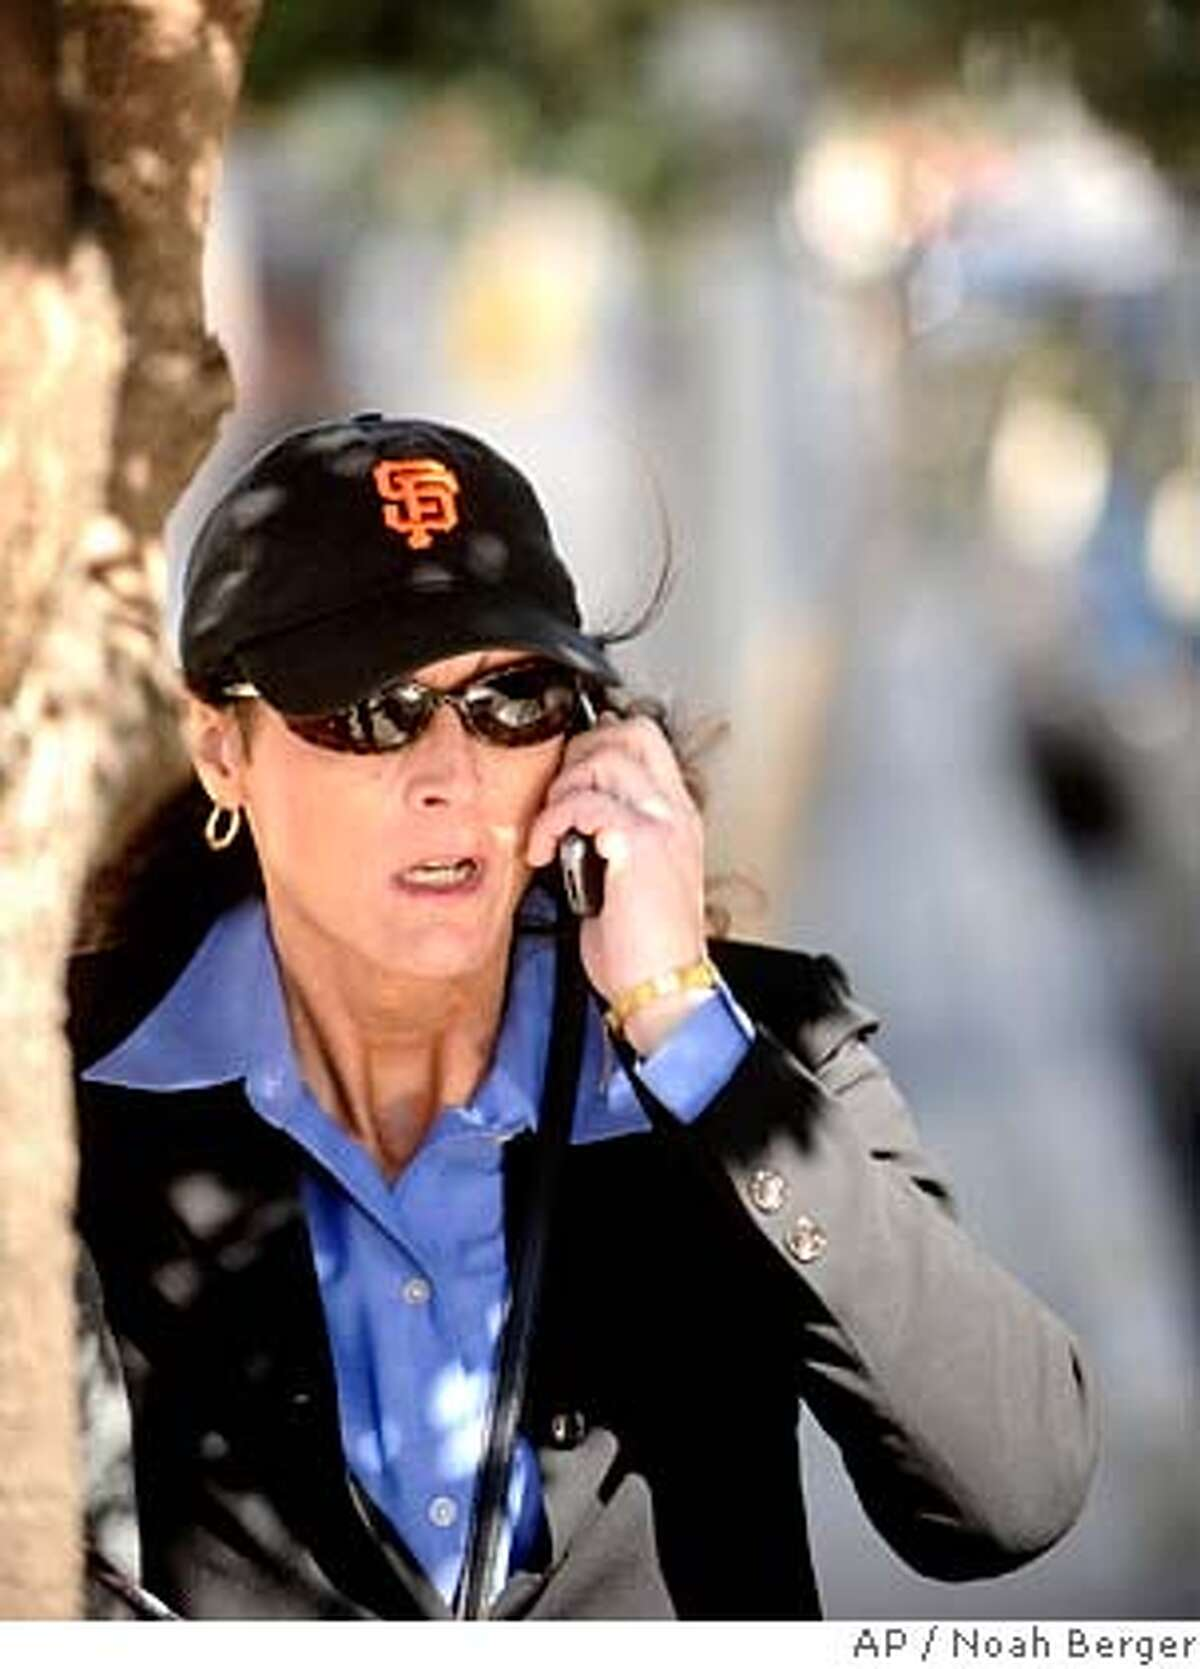 ###Live Caption:Former Olympic cyclist Tammy Thomas talks on her cell phone as she leaves the federal courthouse in San Francisco on Tuesday, March 25, 2008. Thomas is charged with perjury and obstruction of justice for allegedly lying to a federal grand jury investigating a steroid ring that spanned many sports. (AP Photo/Noah Berger)###Caption History:Former Olympic cyclist Tammy Thomas talks on her cell phone as she leaves the federal courthouse in San Francisco on Tuesday, March 25, 2008. Thomas is charged with perjury and obstruction of justice for allegedly lying to a federal grand jury investigating a steroid ring that spanned many sports. (AP Photo/Noah Berger)###Notes:Tammy Thomas###Special Instructions: